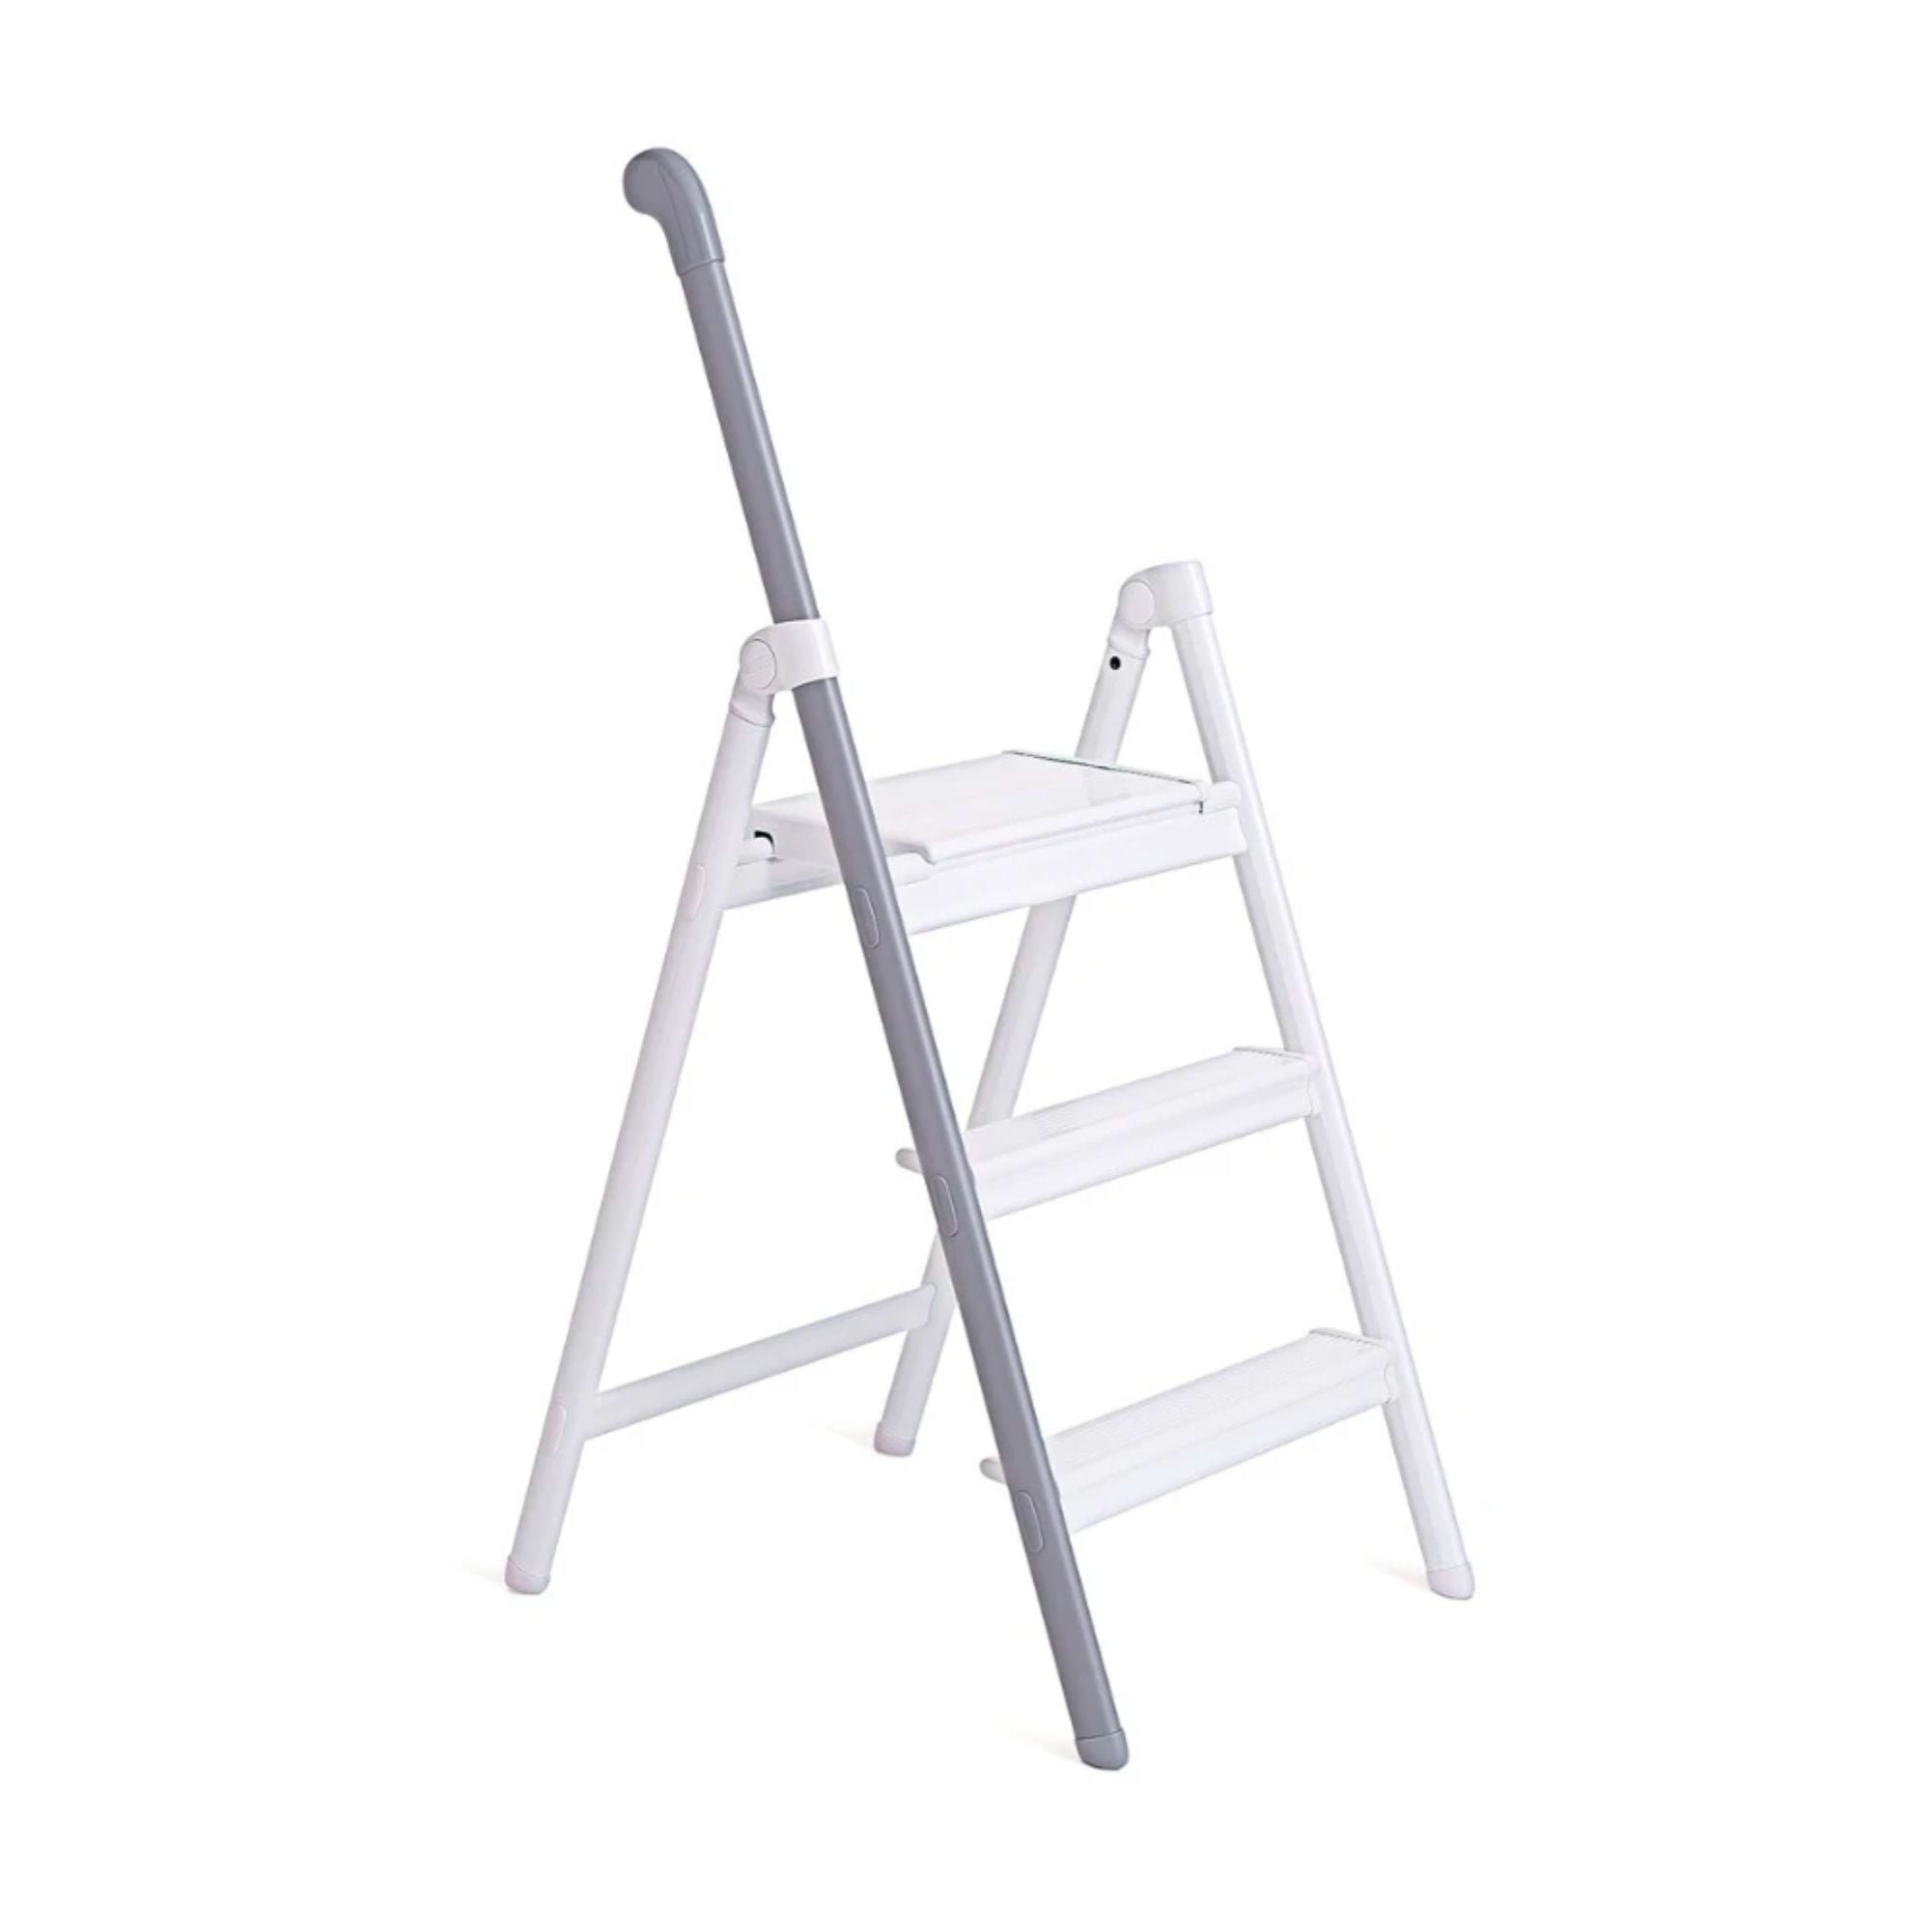 Hasegawa Handle step ladder, 3 steps, grey